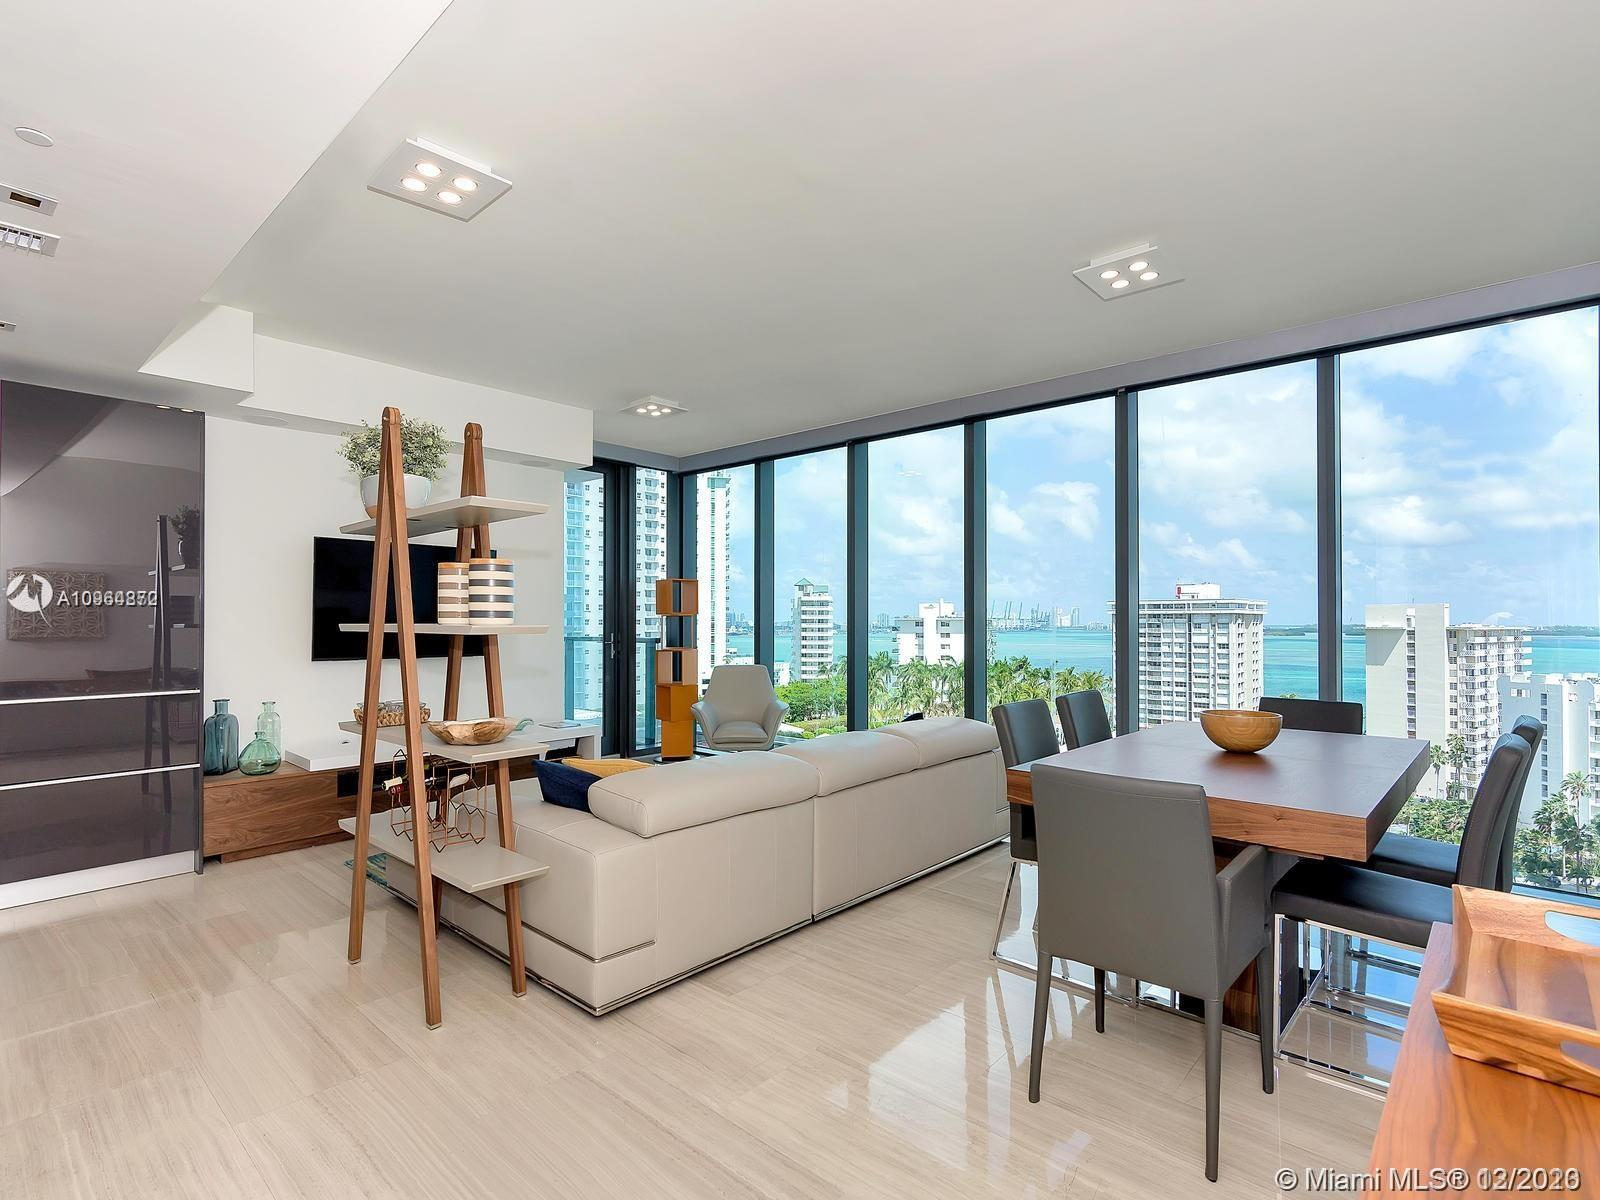 "Brand new unit at Echo Brickell, fully furnished and professionally decorated. Corner 2/2.5 unit with marble throughout, 10"" hight with floor to celling windows. Apple home technology, wall mounted Ipad with controls to audio, lightning, wall treatments and wallet parking. Very easy to show, just call or text the listing agent."